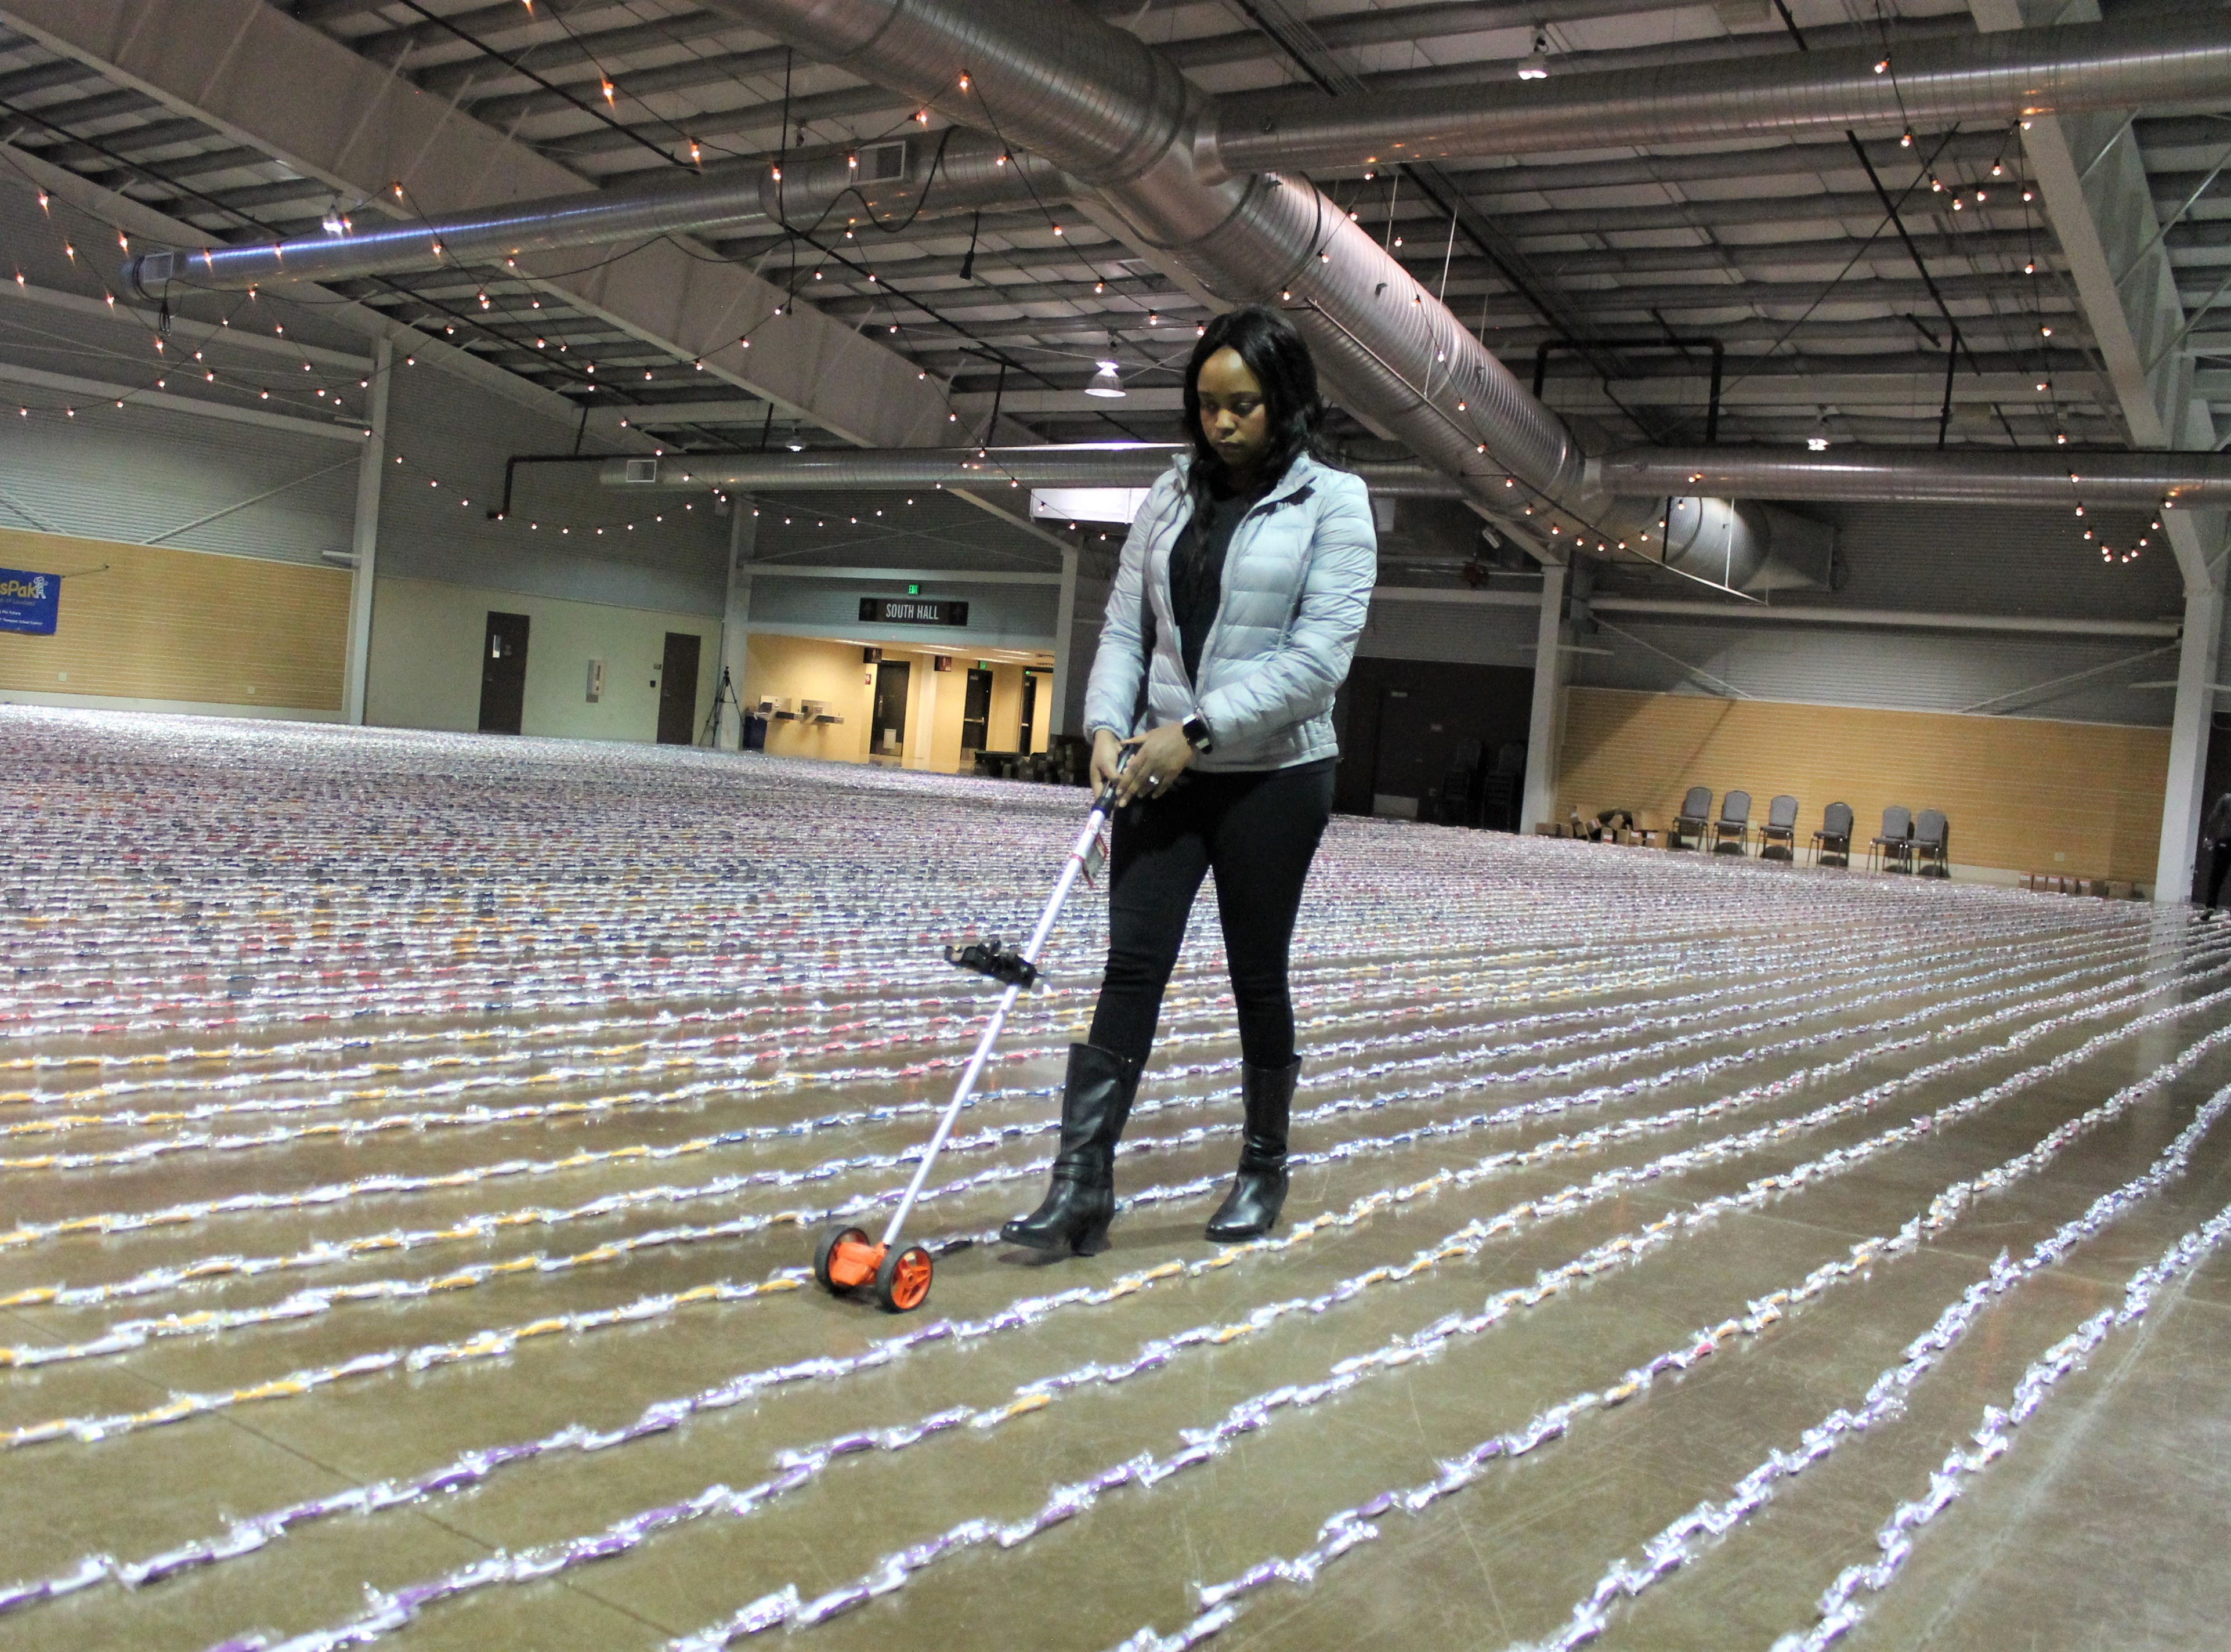 Stacey  Smith, a volunteer with Change Gangs: Virtual Giving Circles, measures and records rows of toothbrushes at The Ranch Event Complex in Loveland Feb. 26, 2019. Organizers lined up more than 40,000 toothbrushes to break the Guinness World Record. The toothbrushes will be donated to kids in need across Colorado.